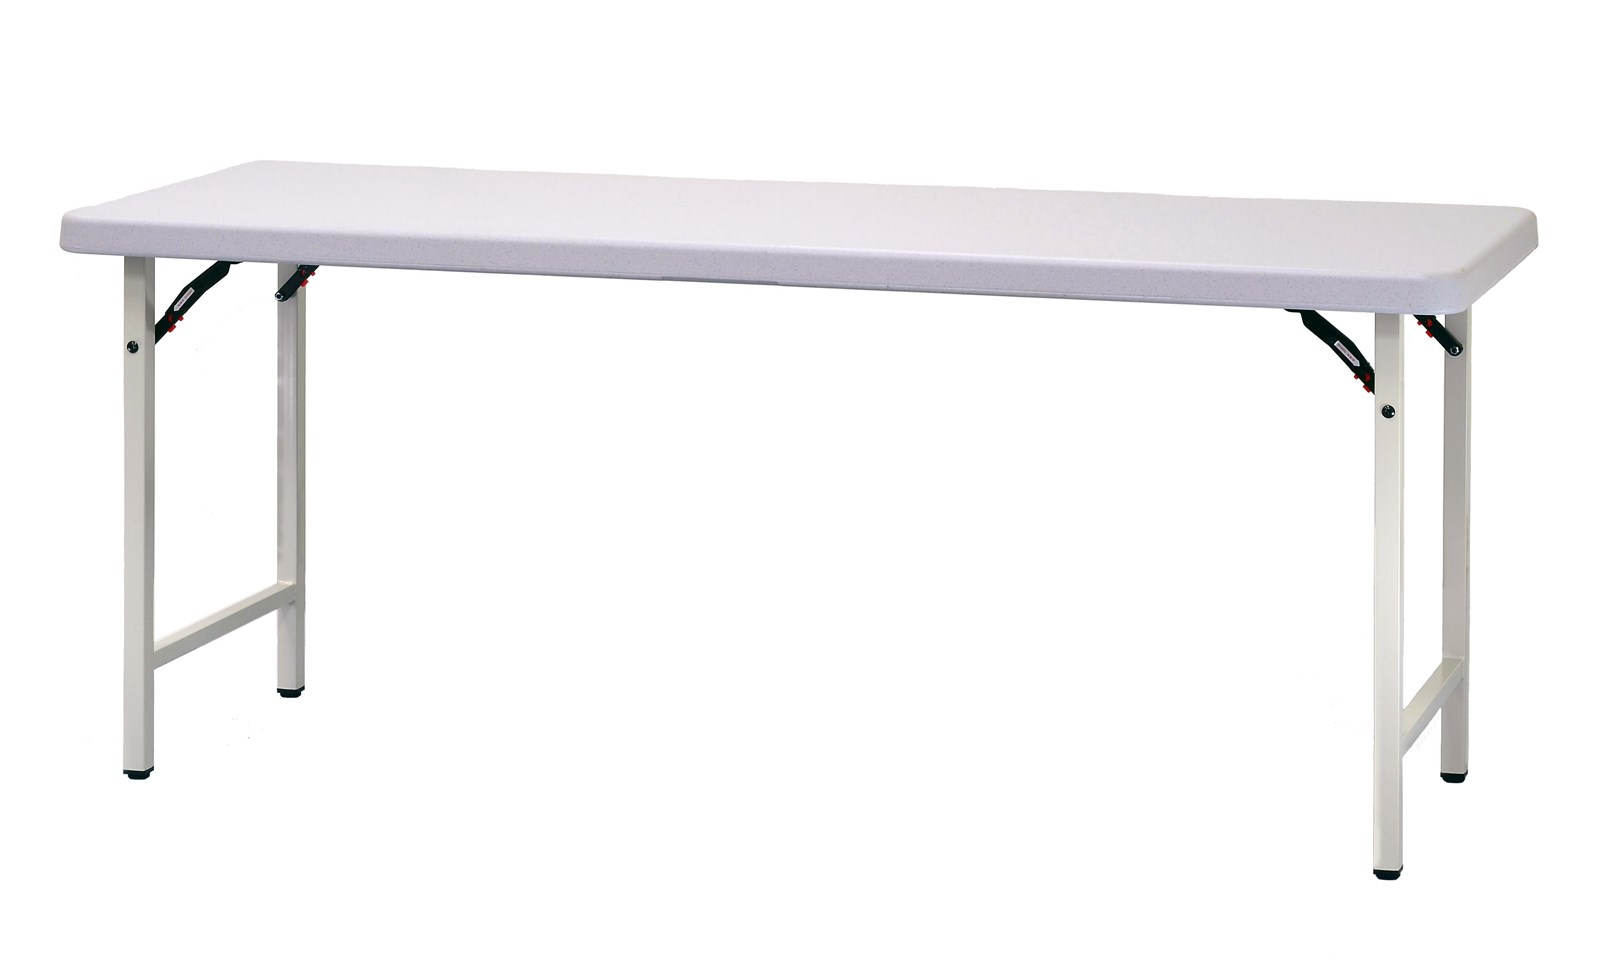 Honeycombed designed in table back for structure reinforcement conference table Module No ET863